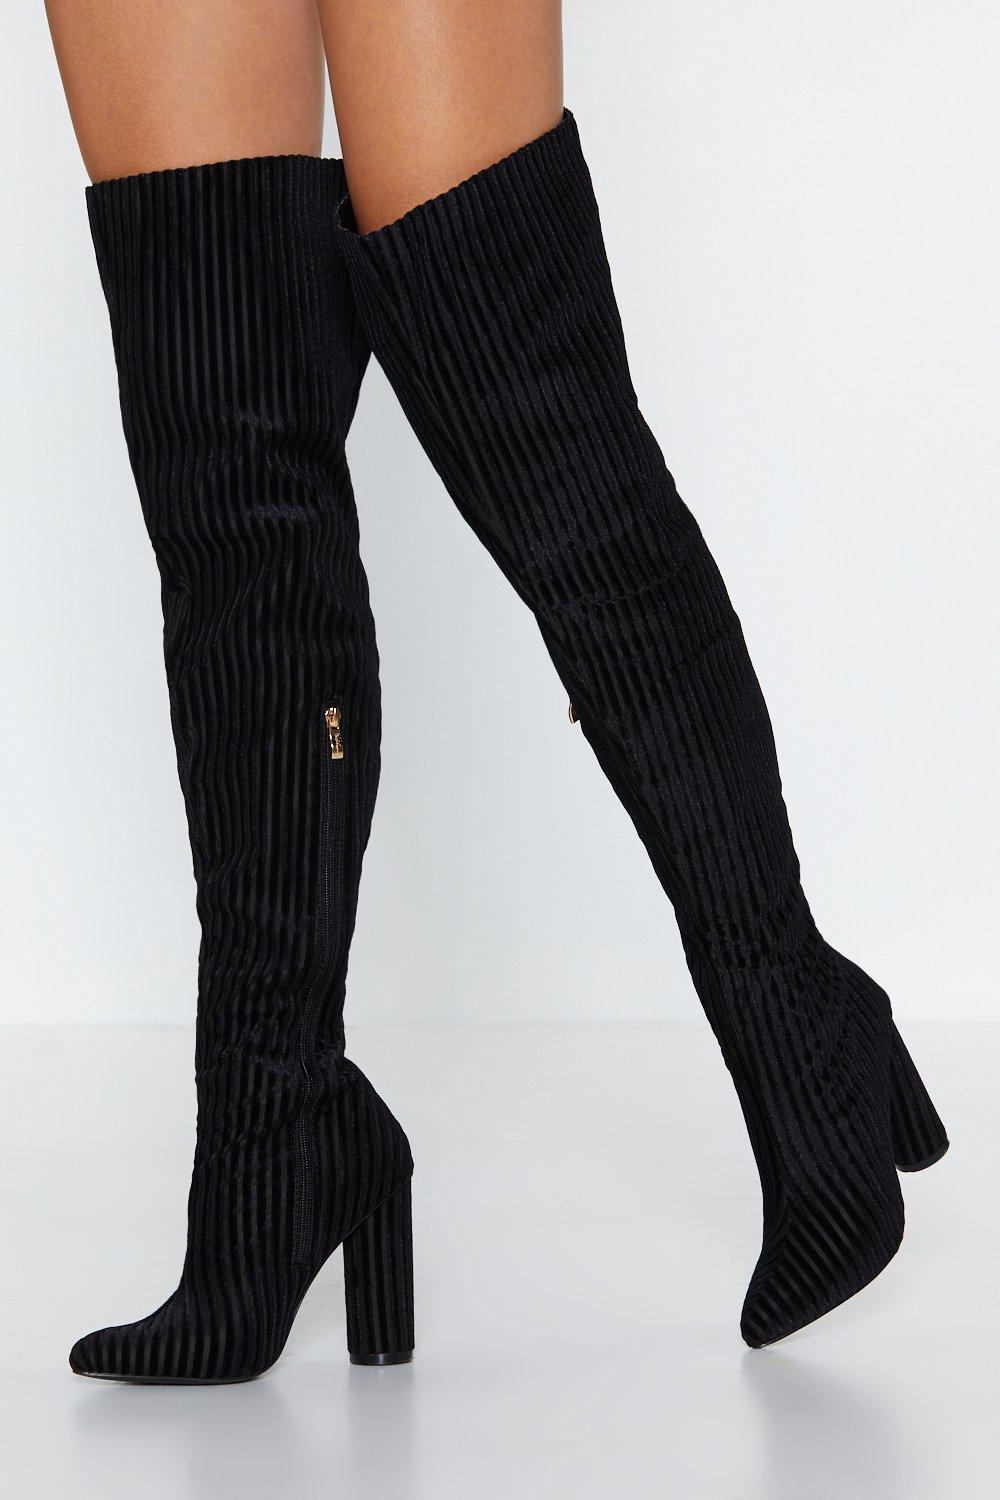 b3973fd80a Ready For the Rib Down Thigh-High Boot | Shop Clothes at Nasty Gal!